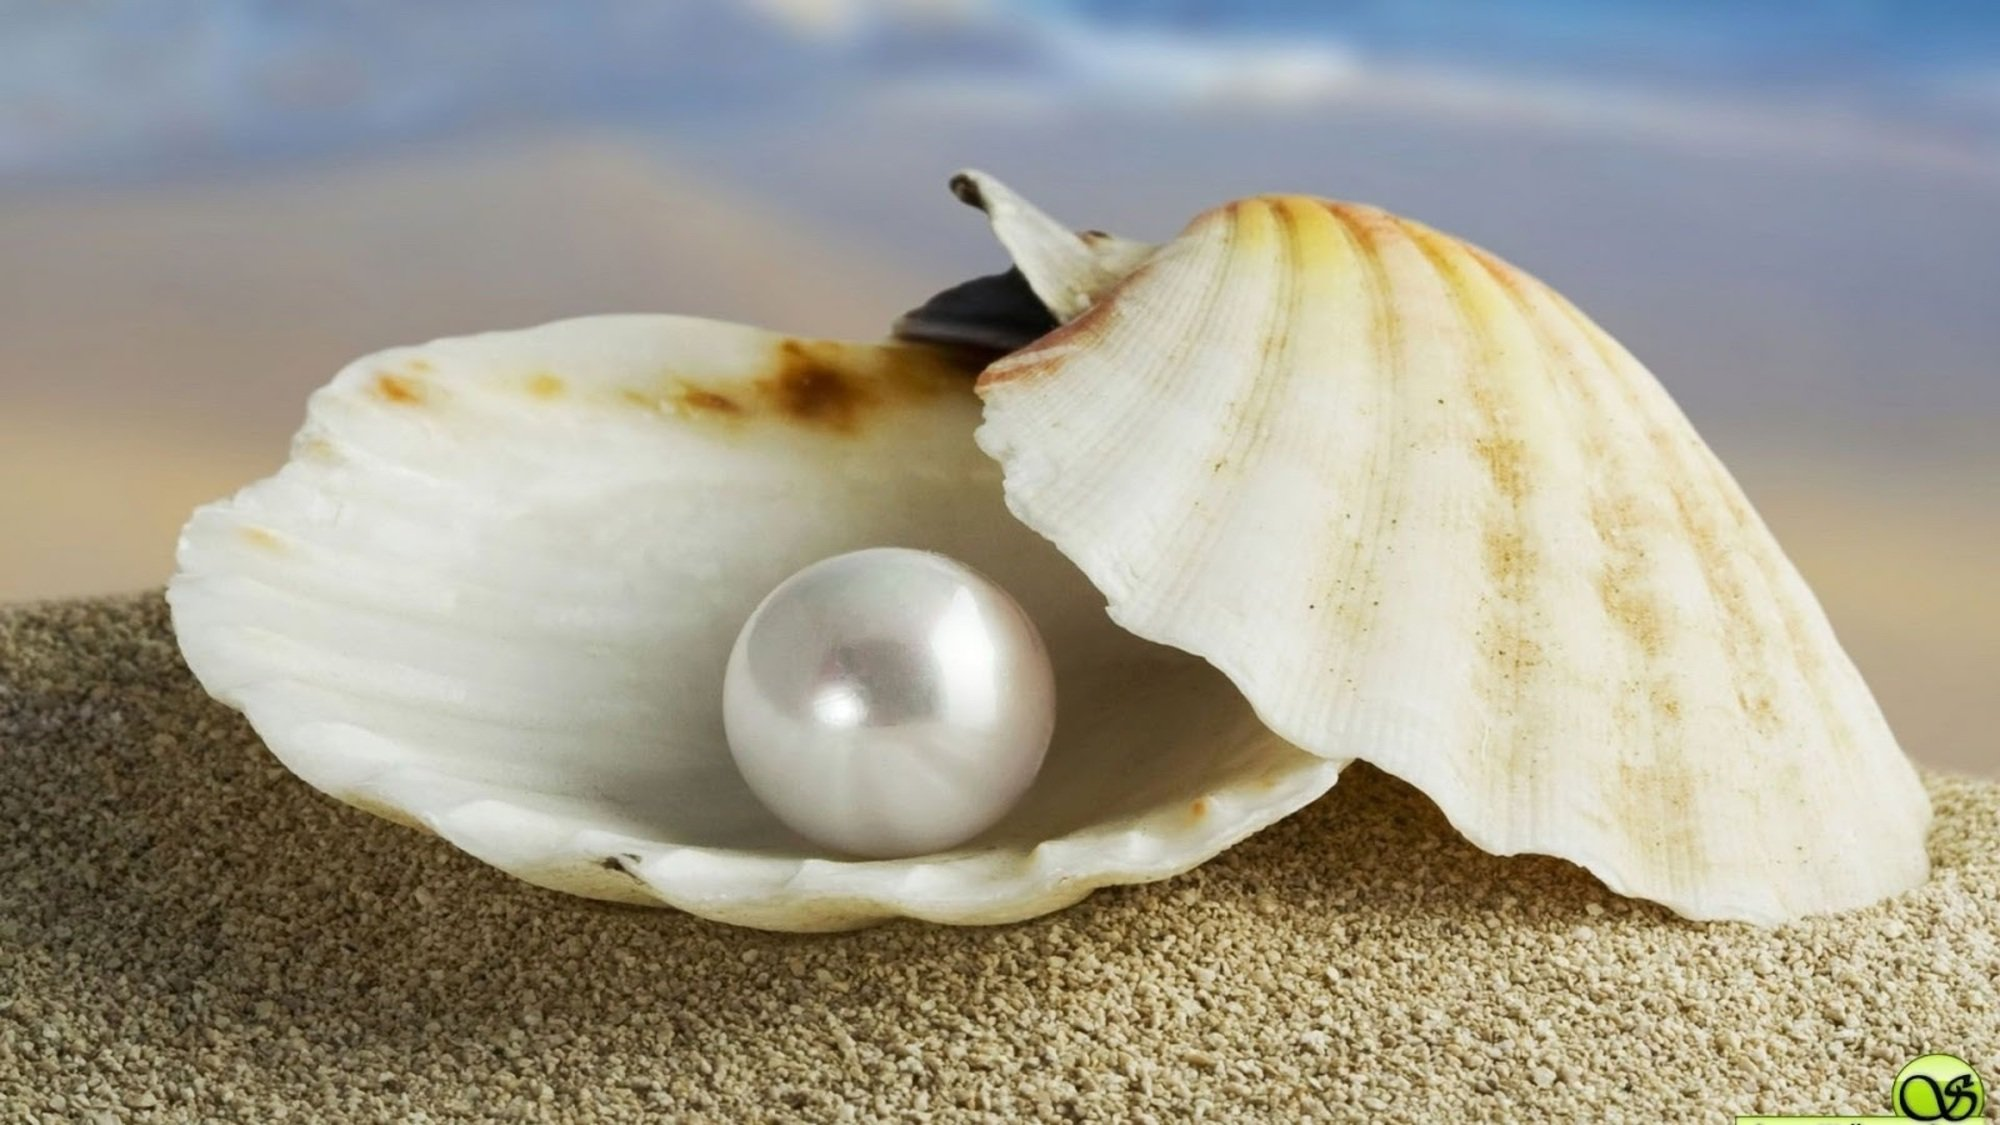 Oyster Pearl Project Forks Into Opacity After Issues with its Funds  